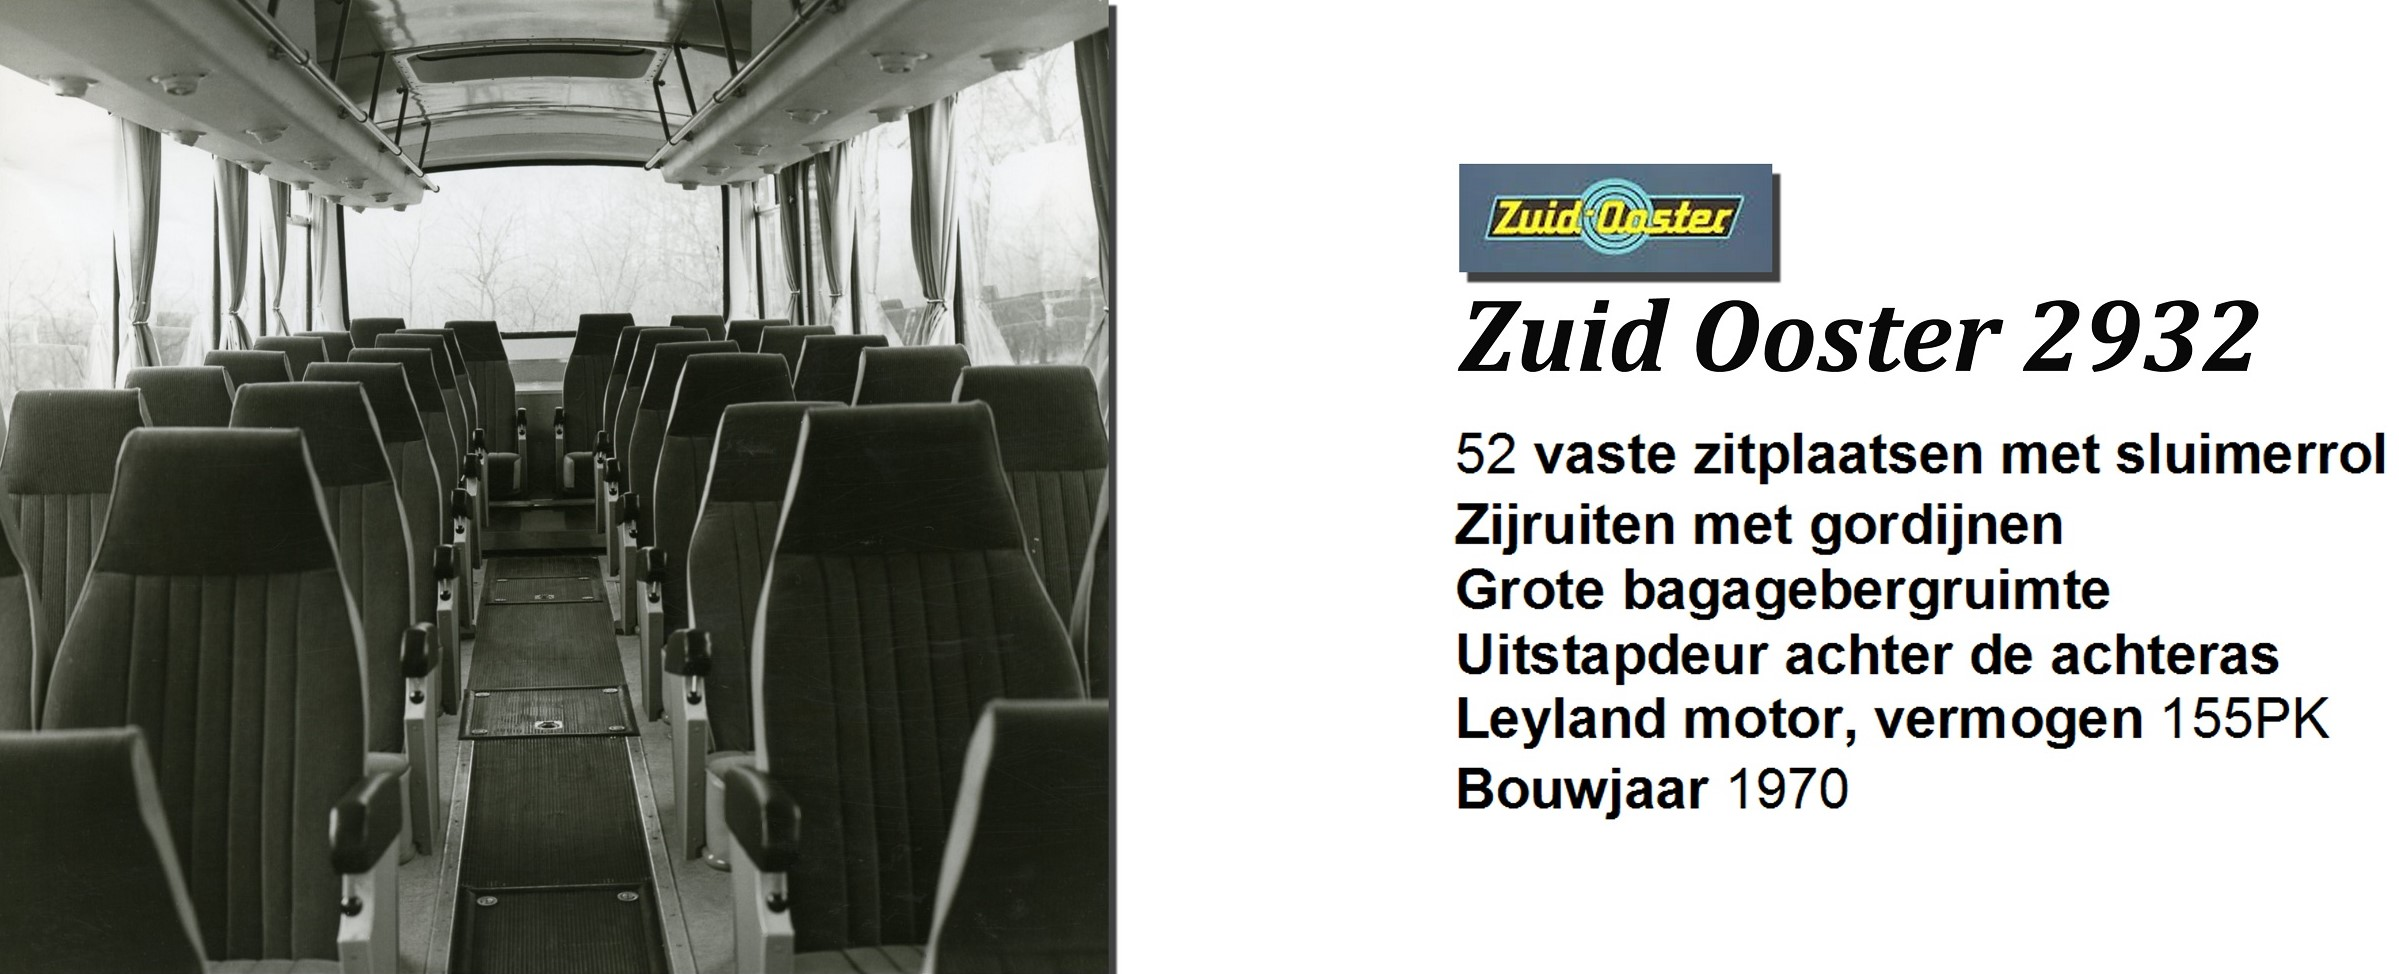 2932-Zuid-Ooster-1